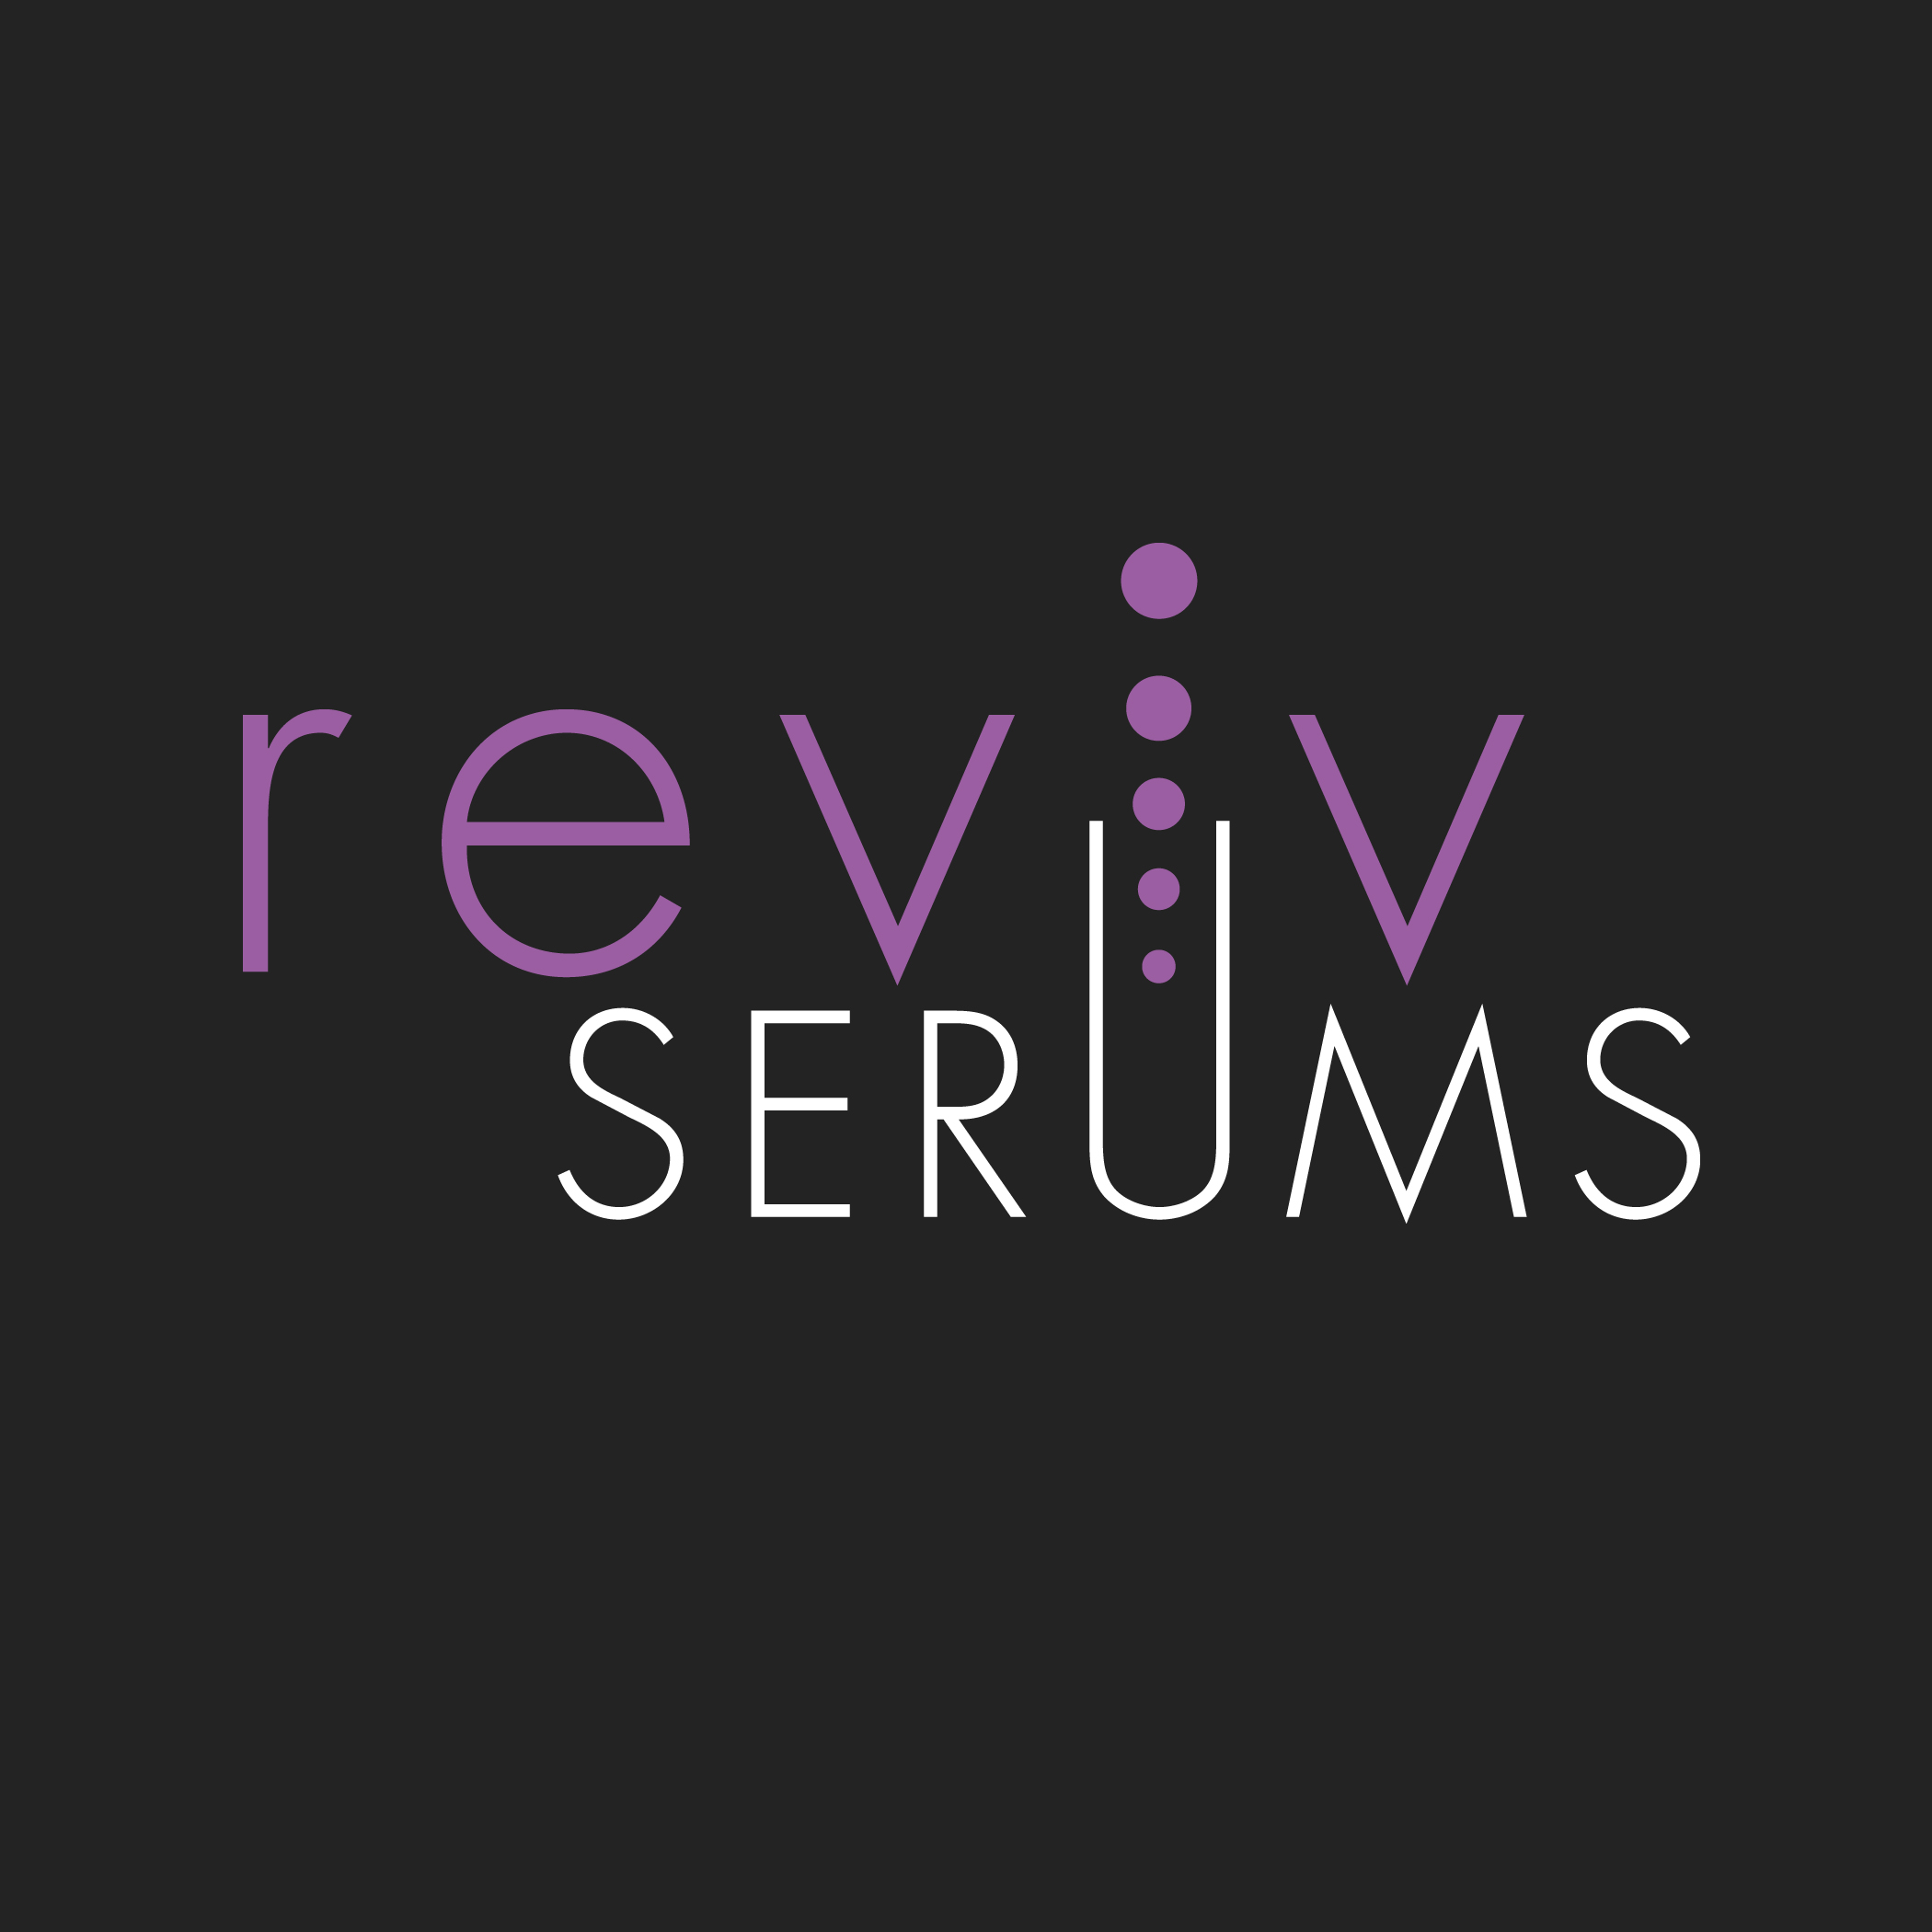 RevivSerums.com / Astonishing Developments Ltd.